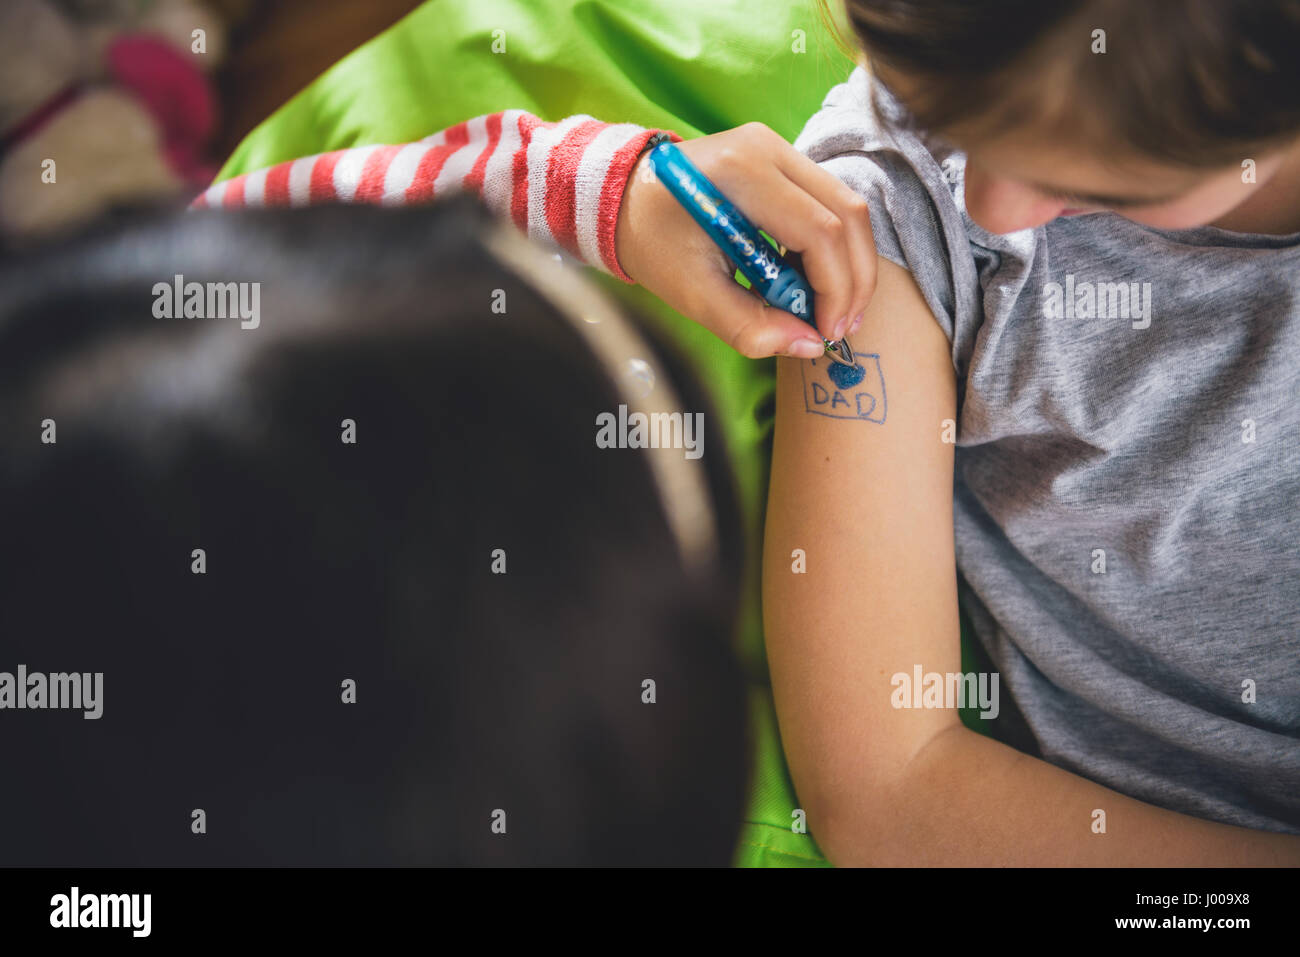 Girl Writing Tattoo On Arm Of Her Girlfriend With Pen Stock Photo